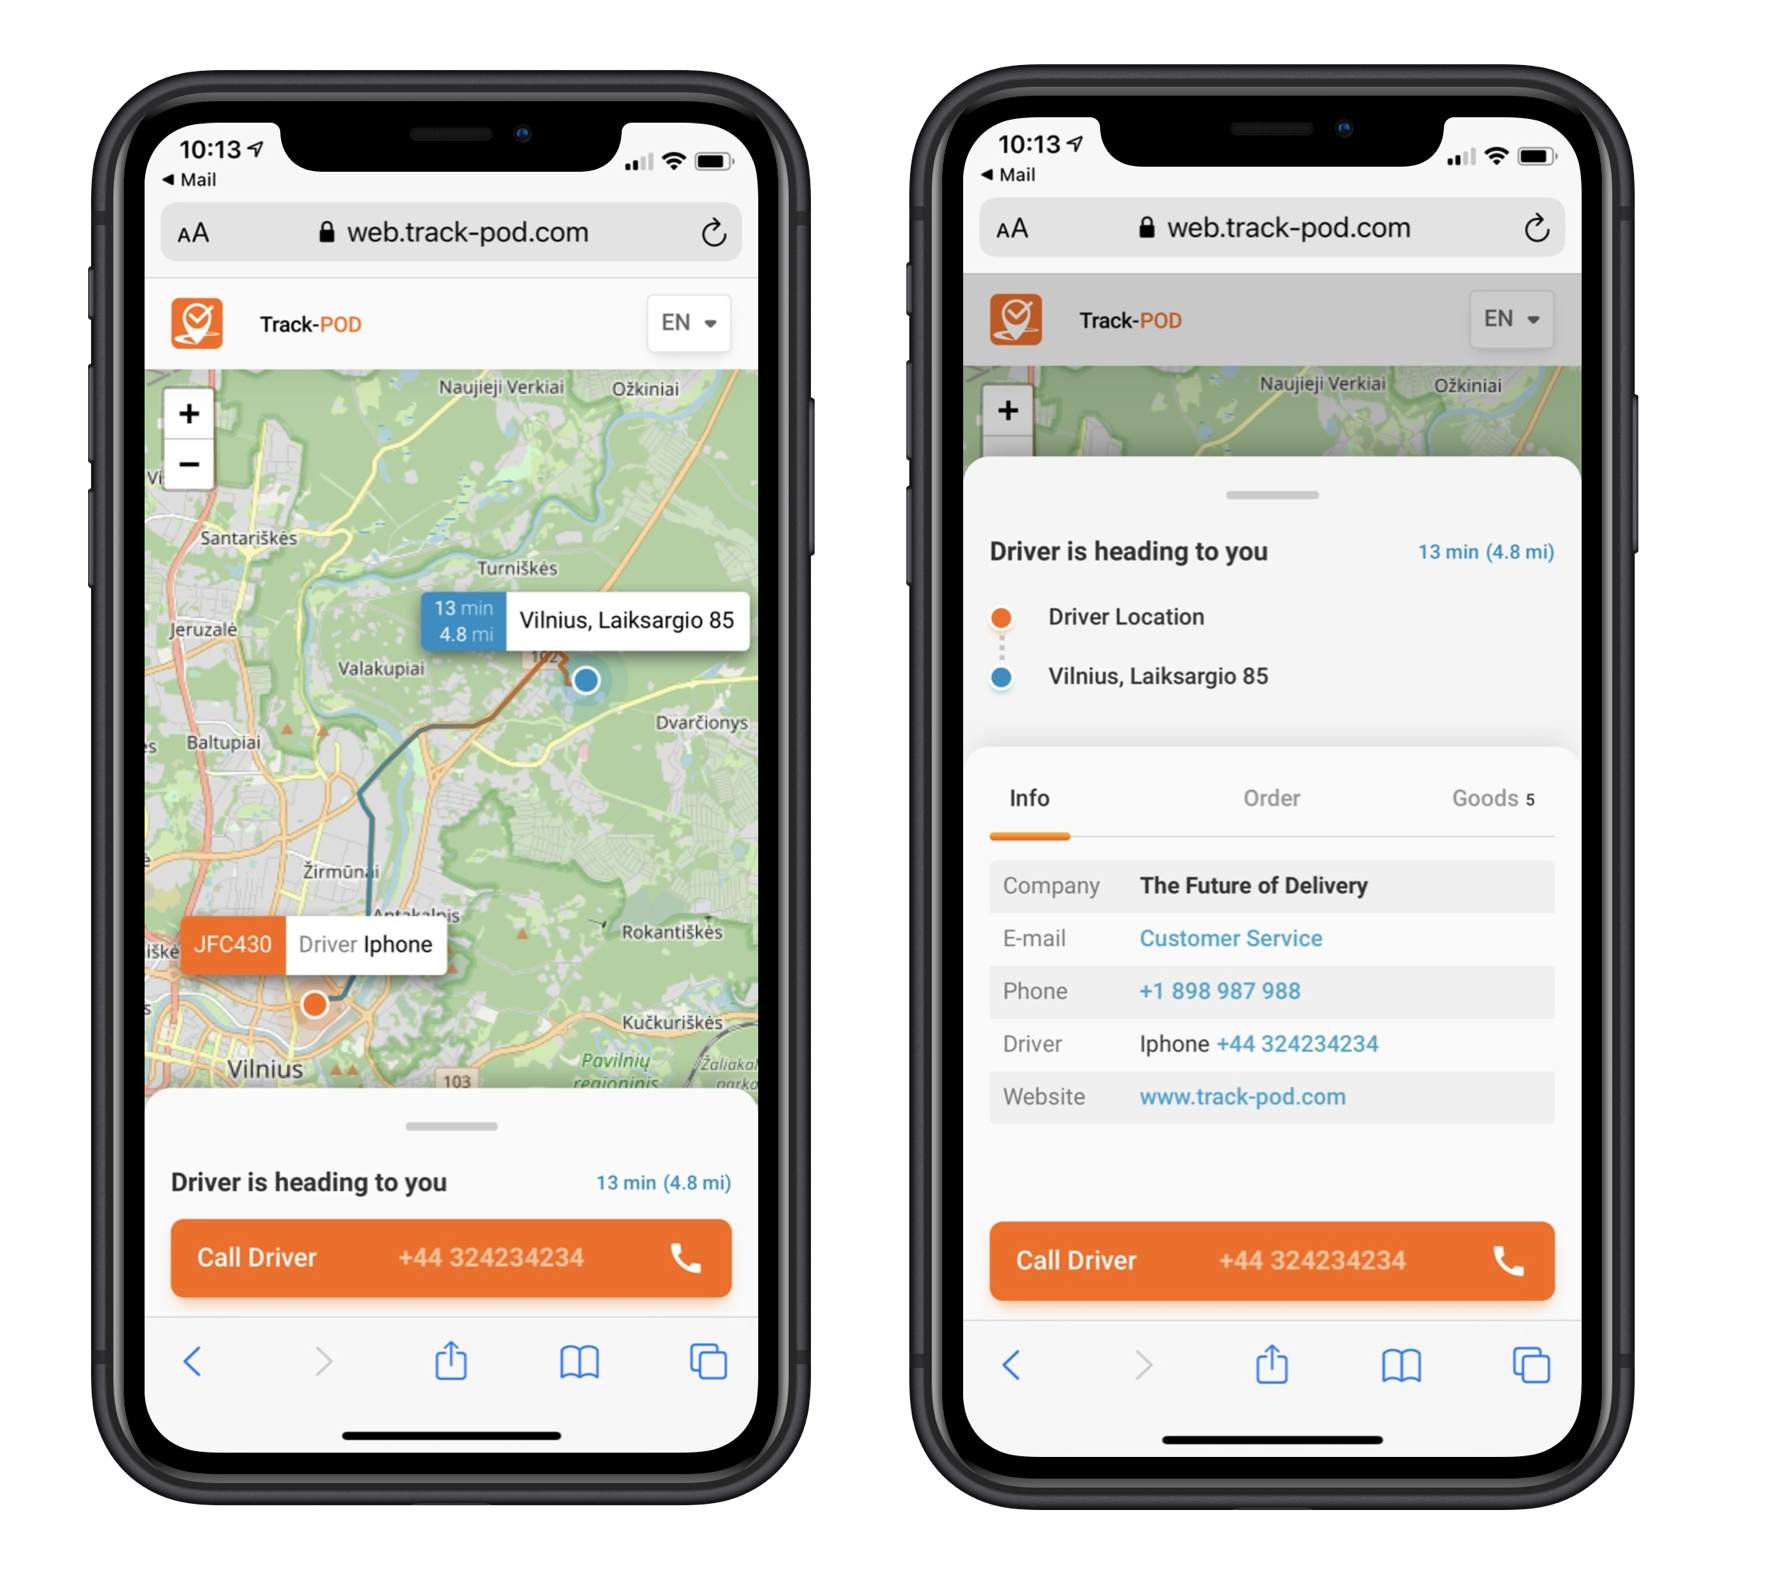 Track-POD Software - Delivery Live Tracking with ETA for your customers